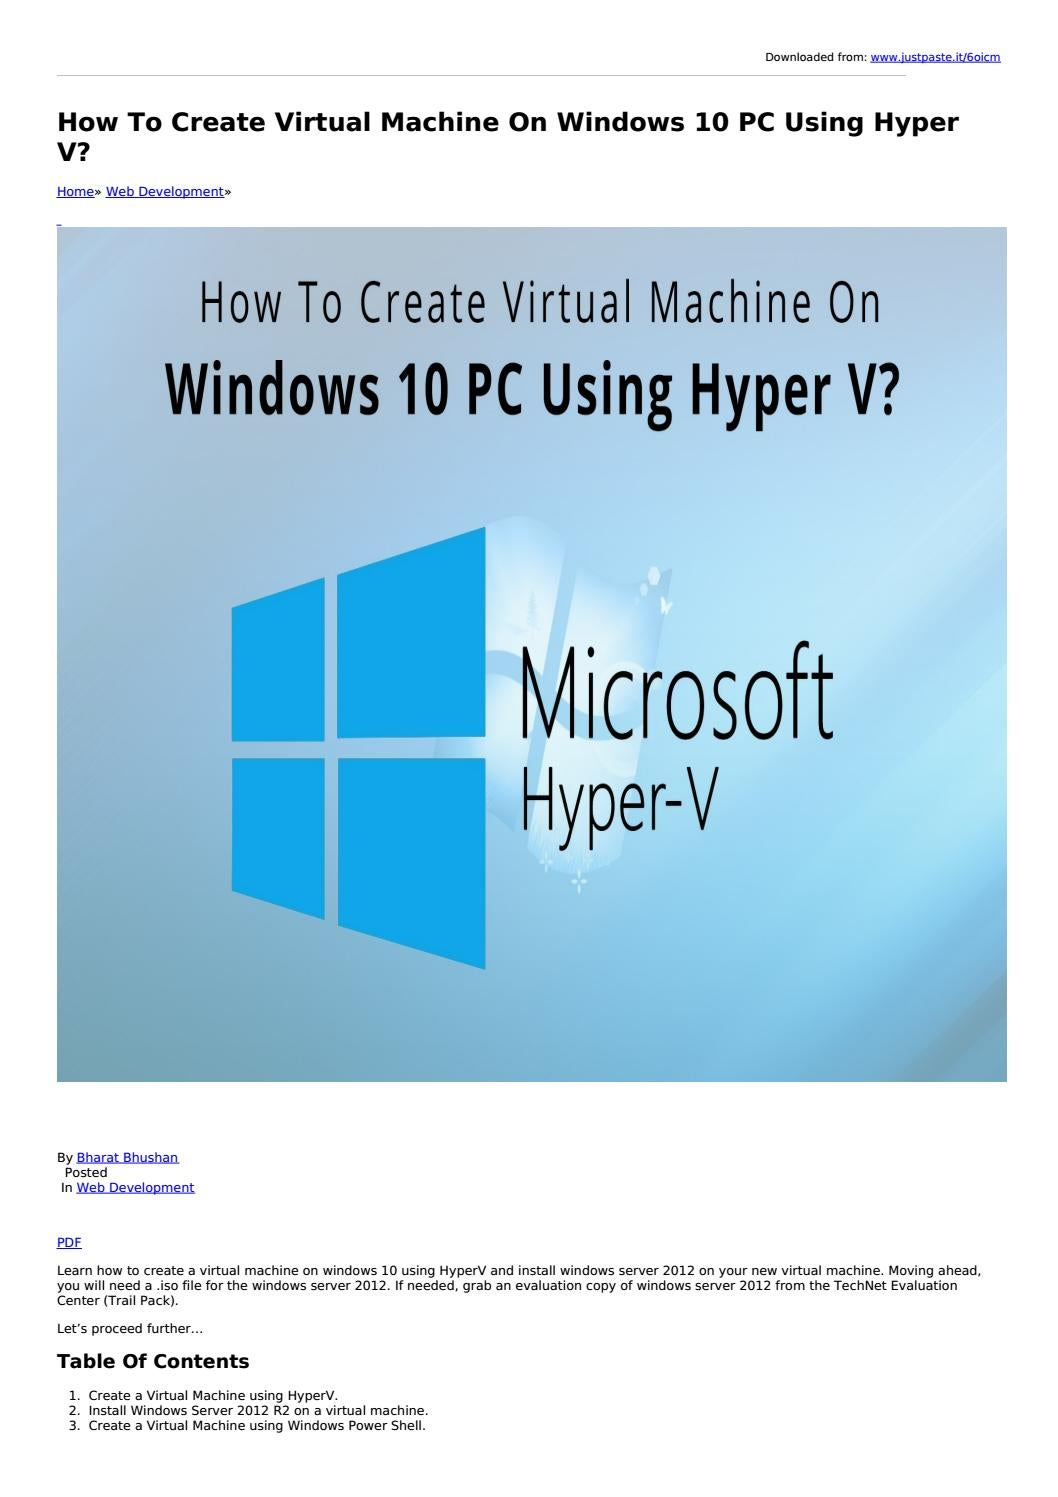 How To Create Virtual Machine On Windows 10 PC Using Hyper V